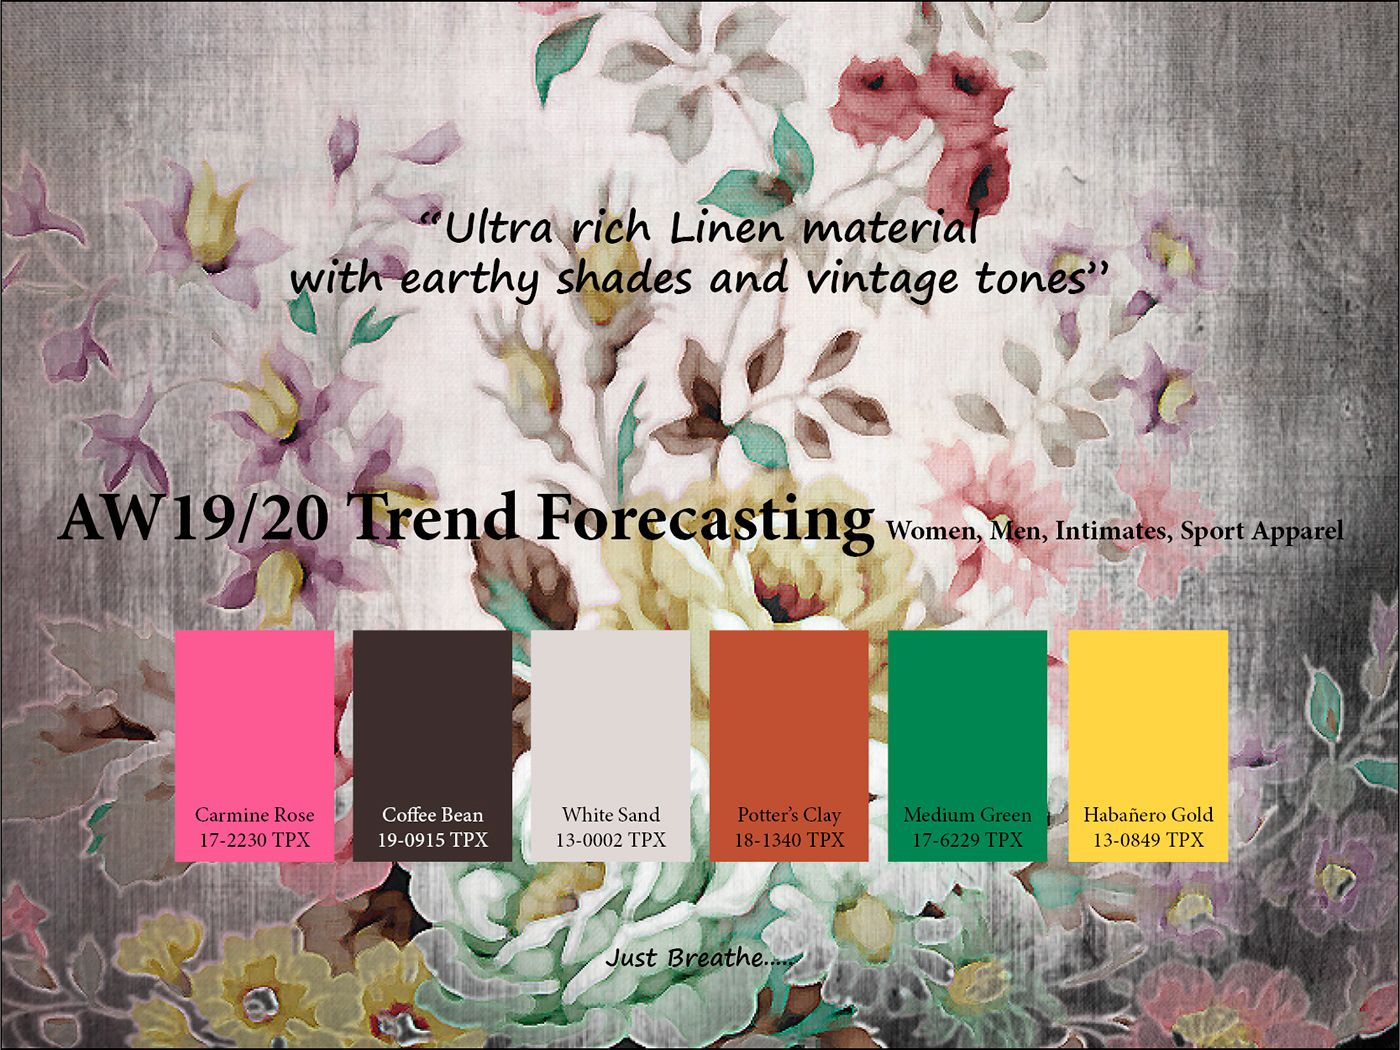 AutumnWinter 2019/2020 trend forecasting is A TREND/COLOR ...